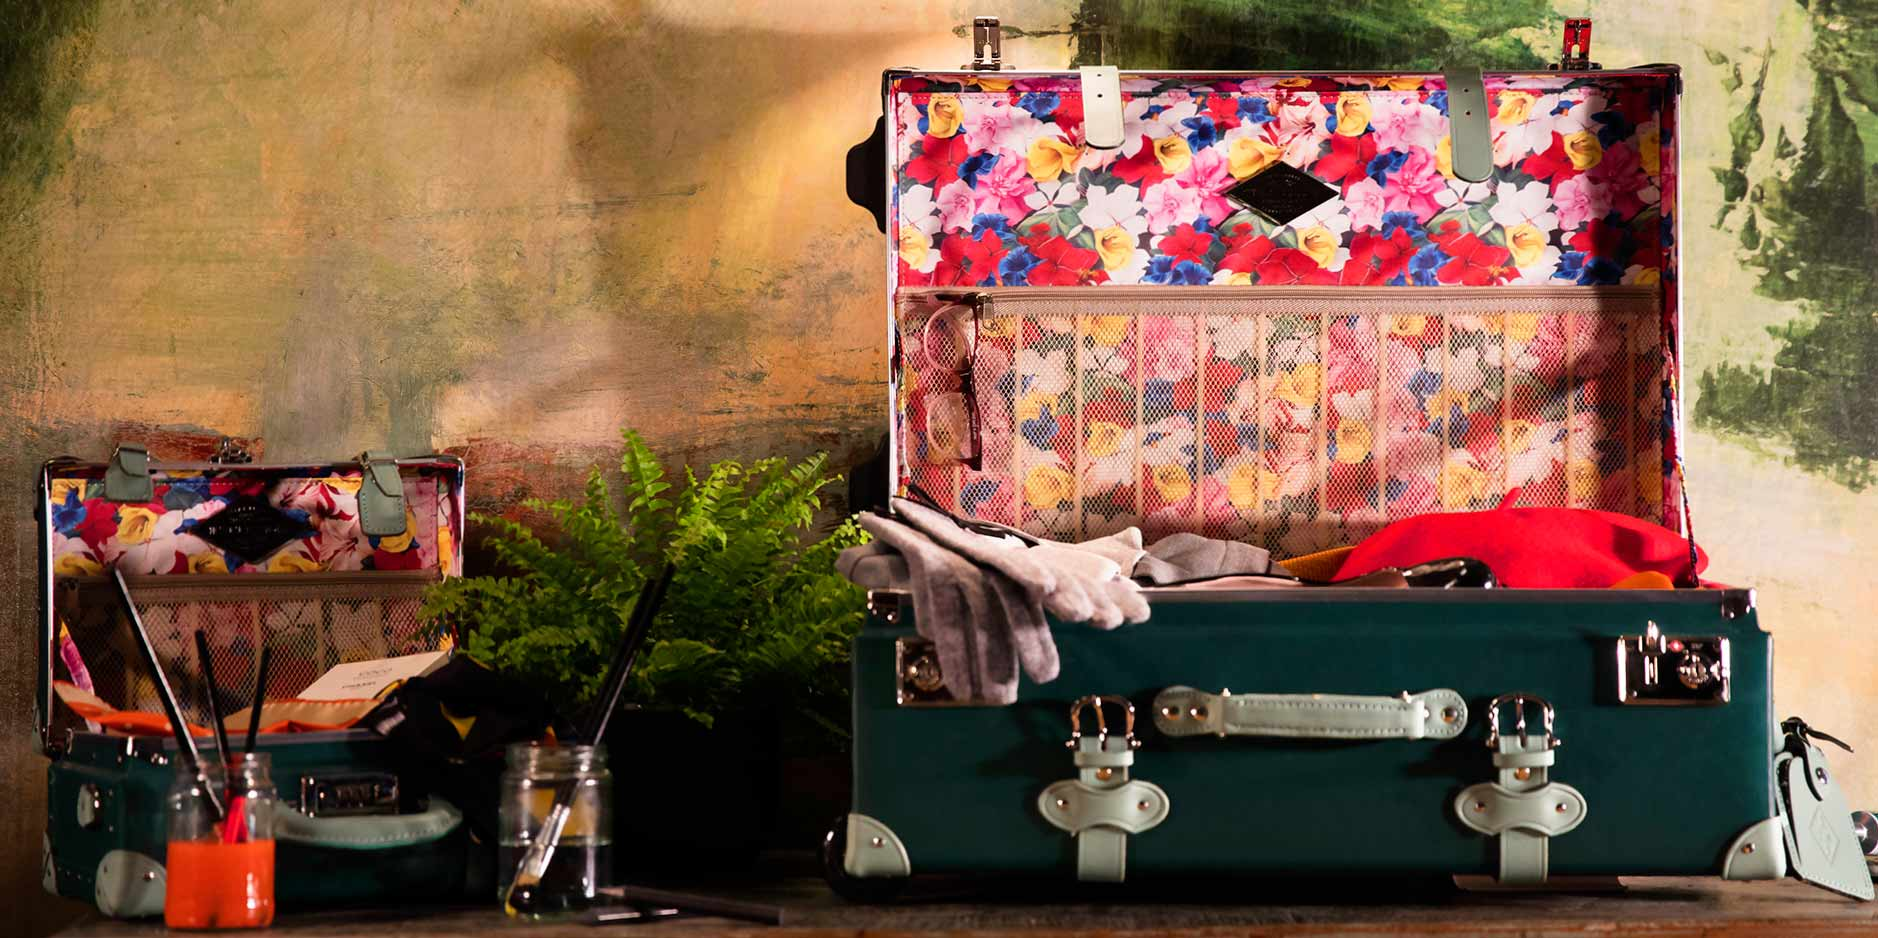 steamline-luggage-collection-1.jpg